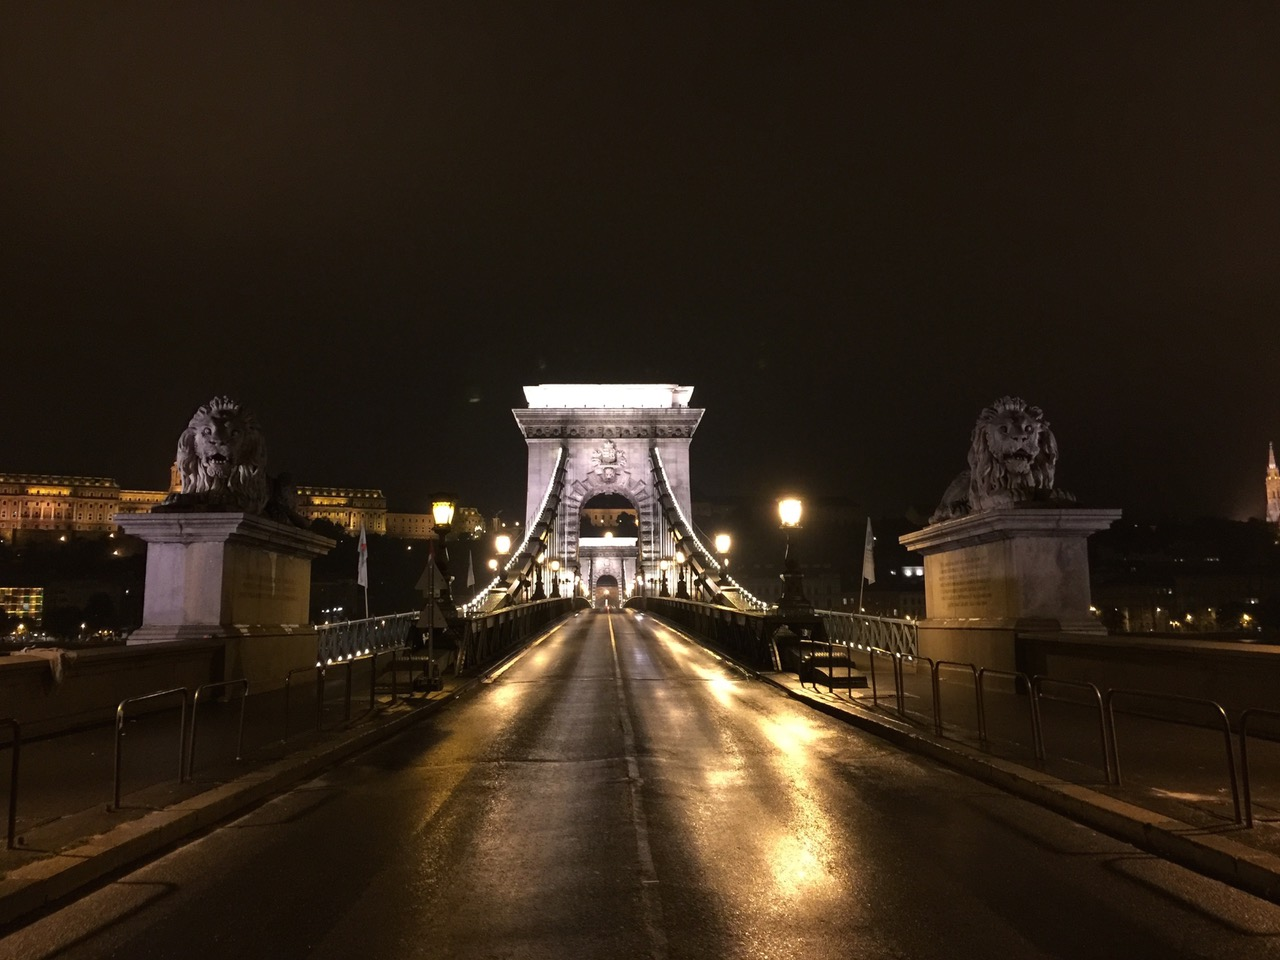 The Chain Bridge at night in Budapest, Hungary